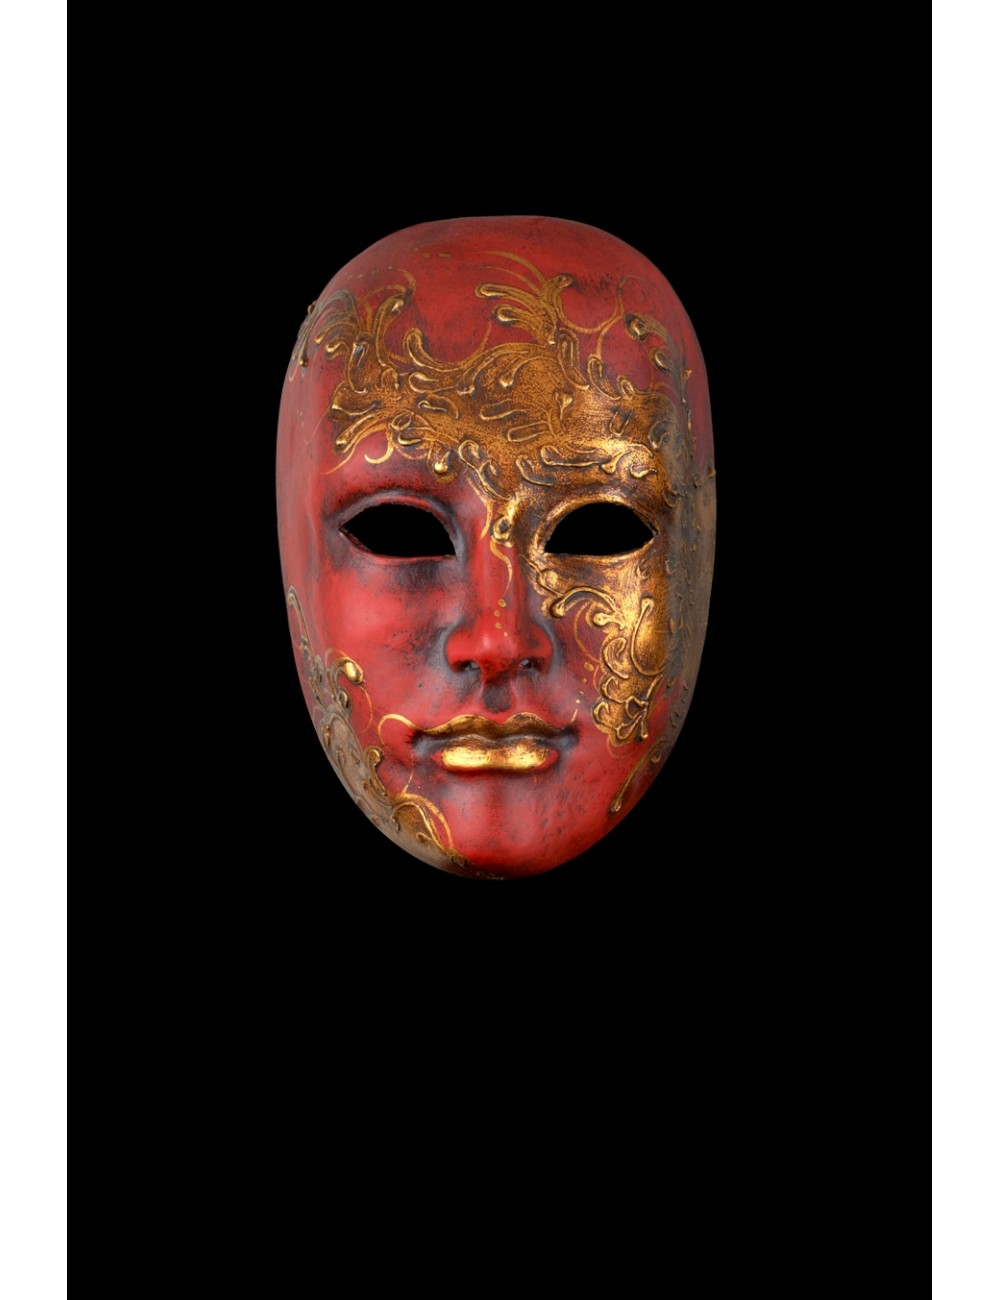 http://originalveniceshop.com/2054-thickbox_default/red-face-with-gold.jpg